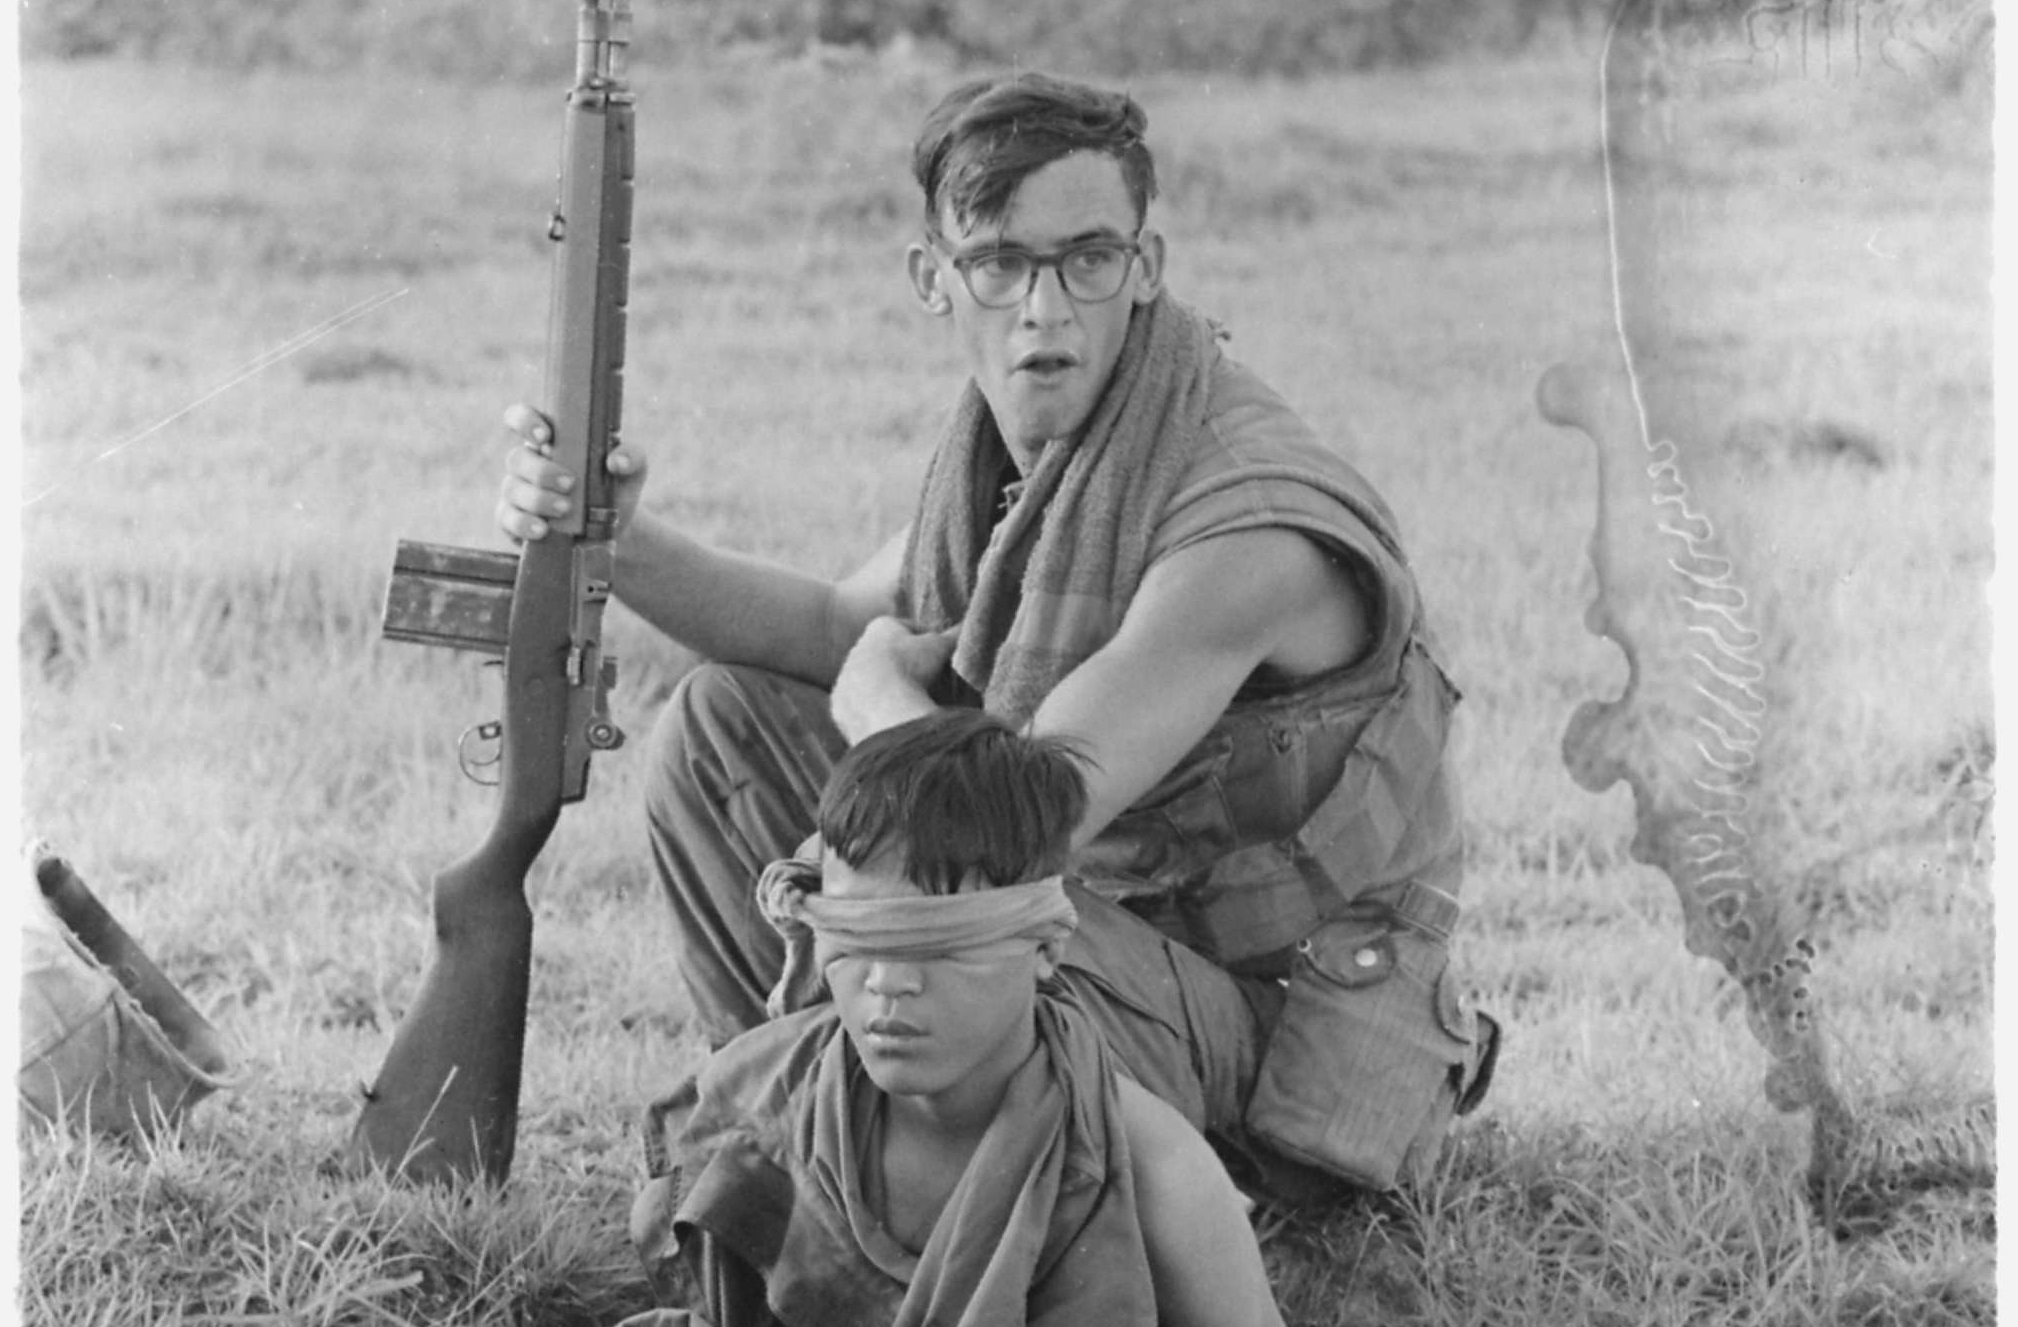 Corporal Carter Guards an NVA Soldier he Captured